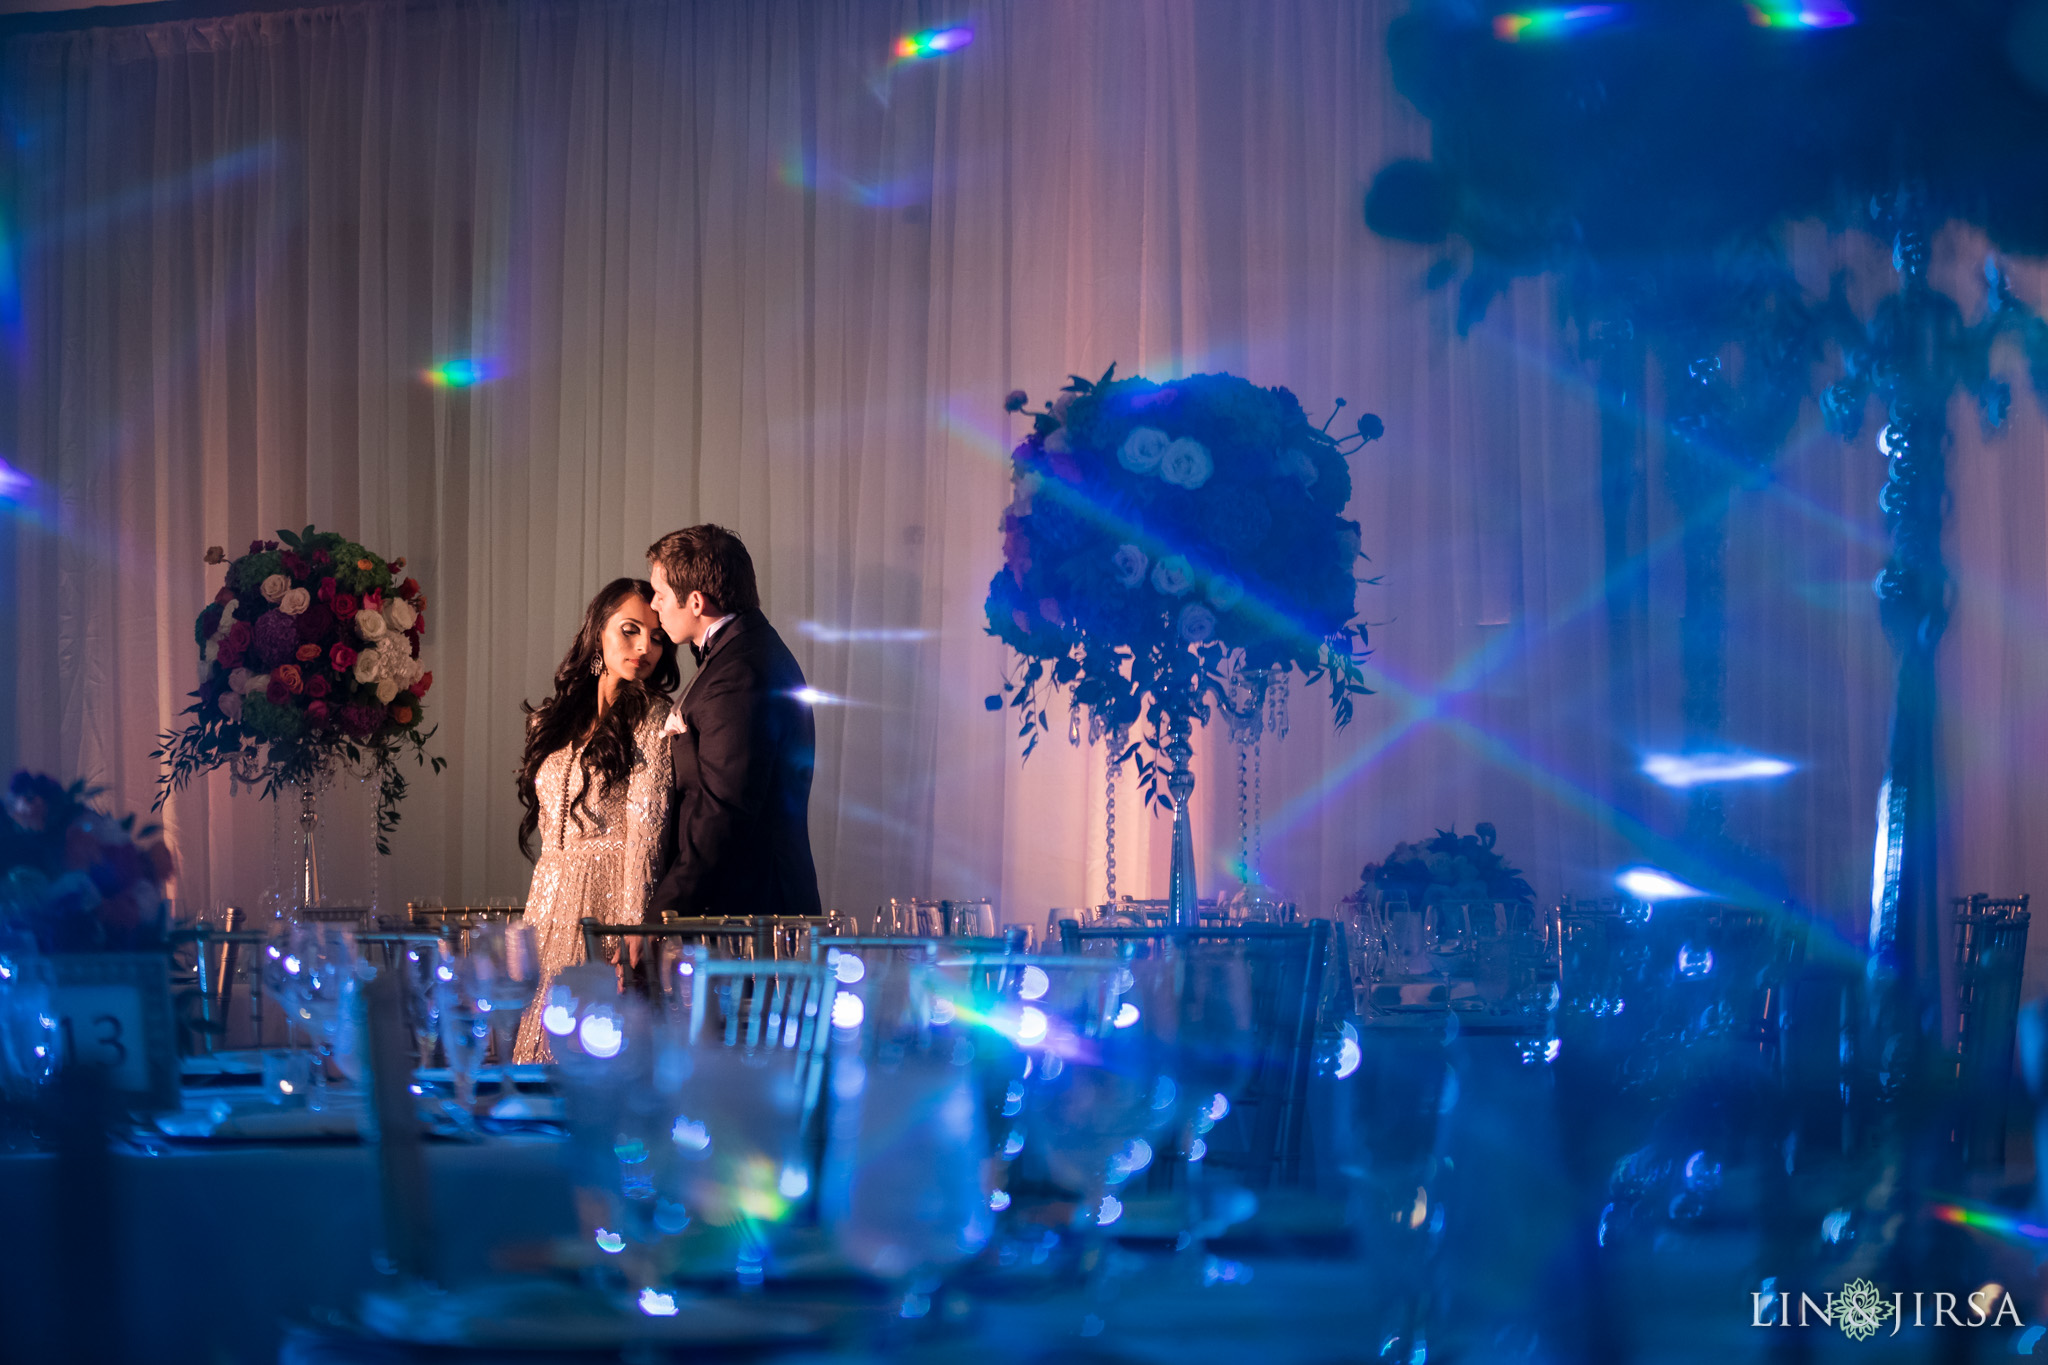 50 newport beach marriott hotel indian wedding reception photography